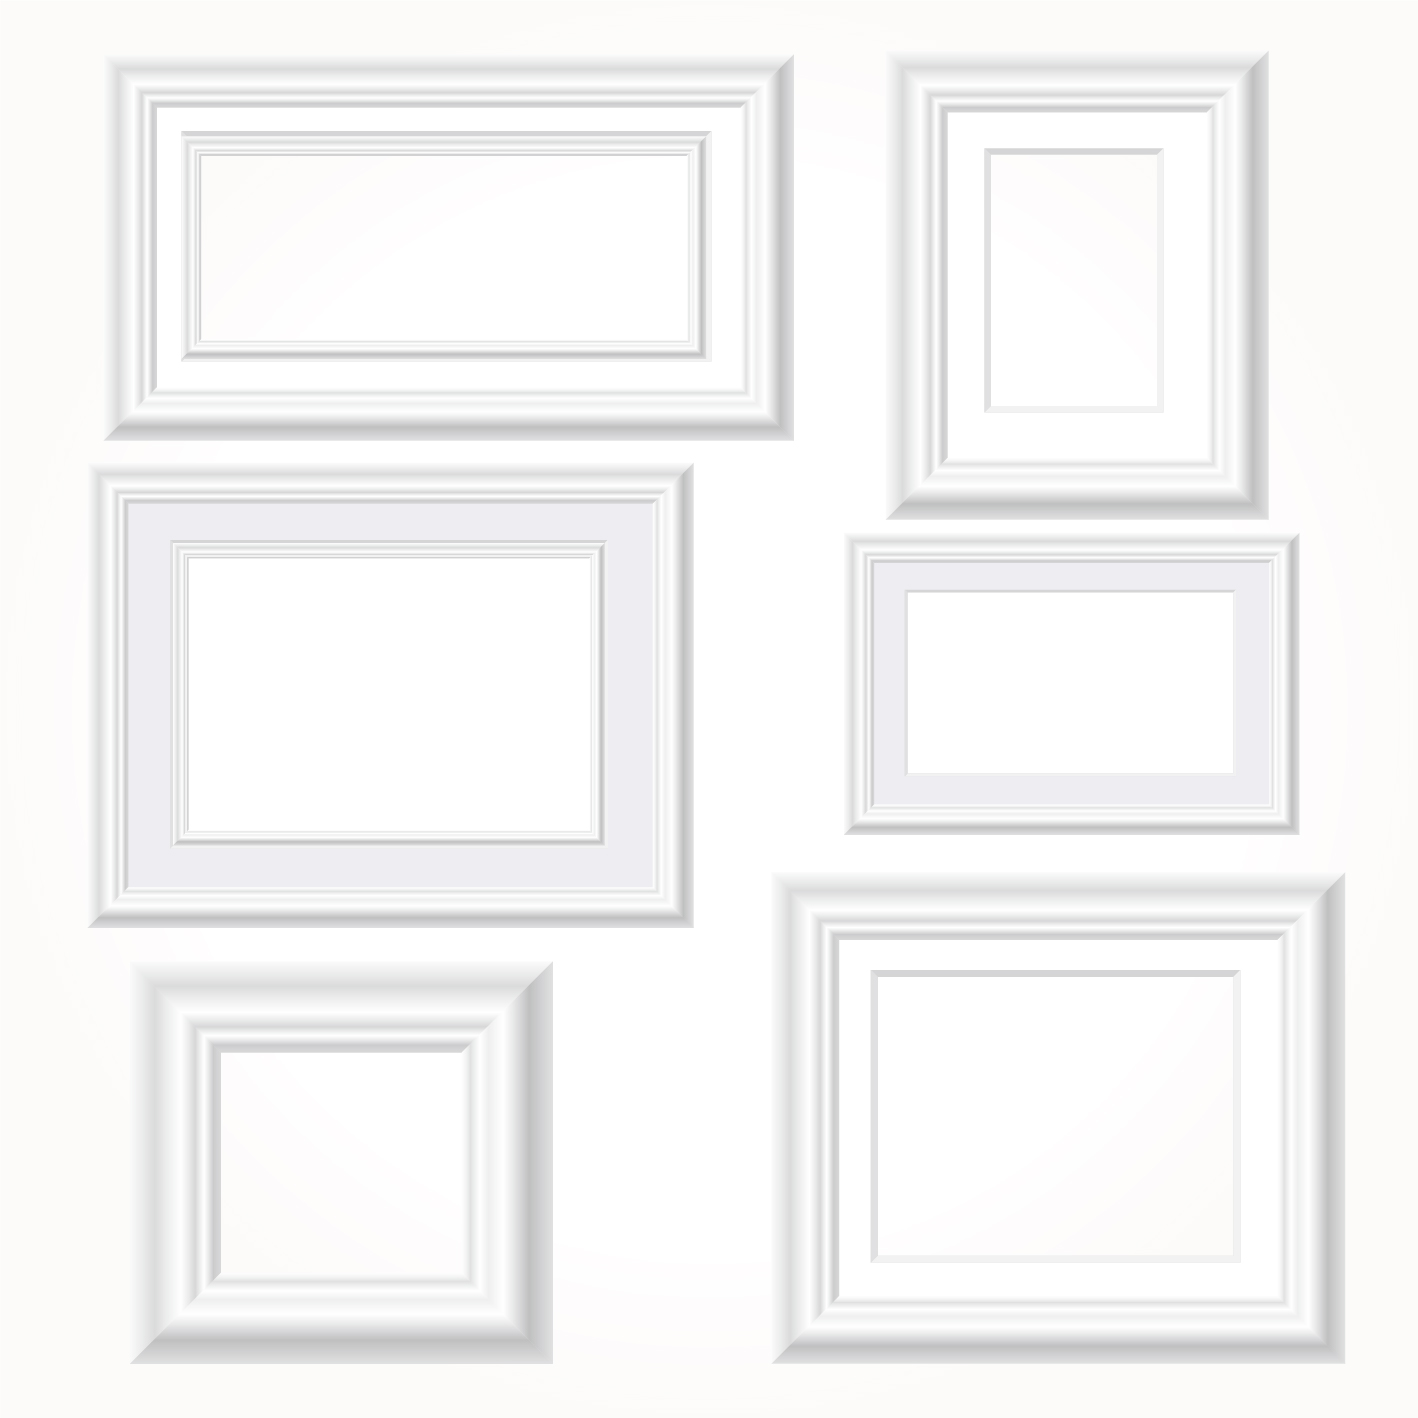 White photo frames vector set free download